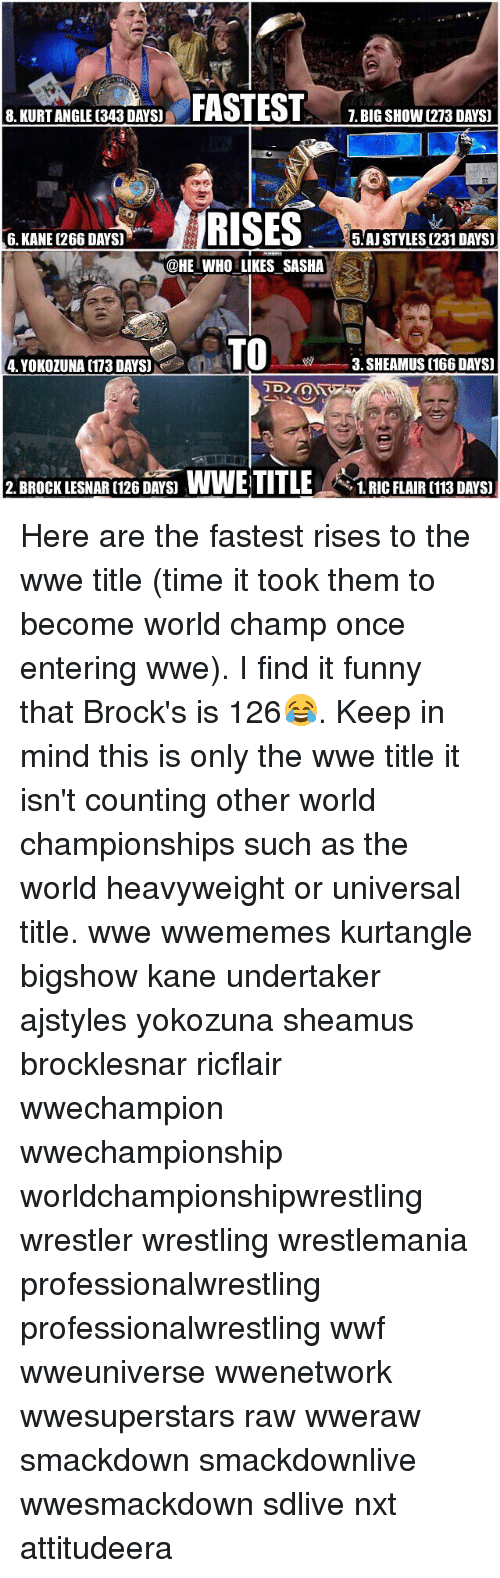 Aj Styles: FASTEST  8. KURTANGLE (343 DAYSU  RISES  6. KANE (266 DAYS)  5 AJ STYLES(231 DAYS)  @HE WHO LIKES SASHA  TO  3. SHEAMUS (166 DAYS)  2. BROCK LESNAR (126 DAYS WWE TITLE  t, 1.RIC FLAIR (113 DAYS) Here are the fastest rises to the wwe title (time it took them to become world champ once entering wwe). I find it funny that Brock's is 126😂. Keep in mind this is only the wwe title it isn't counting other world championships such as the world heavyweight or universal title. wwe wwememes kurtangle bigshow kane undertaker ajstyles yokozuna sheamus brocklesnar ricflair wwechampion wwechampionship worldchampionshipwrestling wrestler wrestling wrestlemania professionalwrestling professionalwrestling wwf wweuniverse wwenetwork wwesuperstars raw wweraw smackdown smackdownlive wwesmackdown sdlive nxt attitudeera